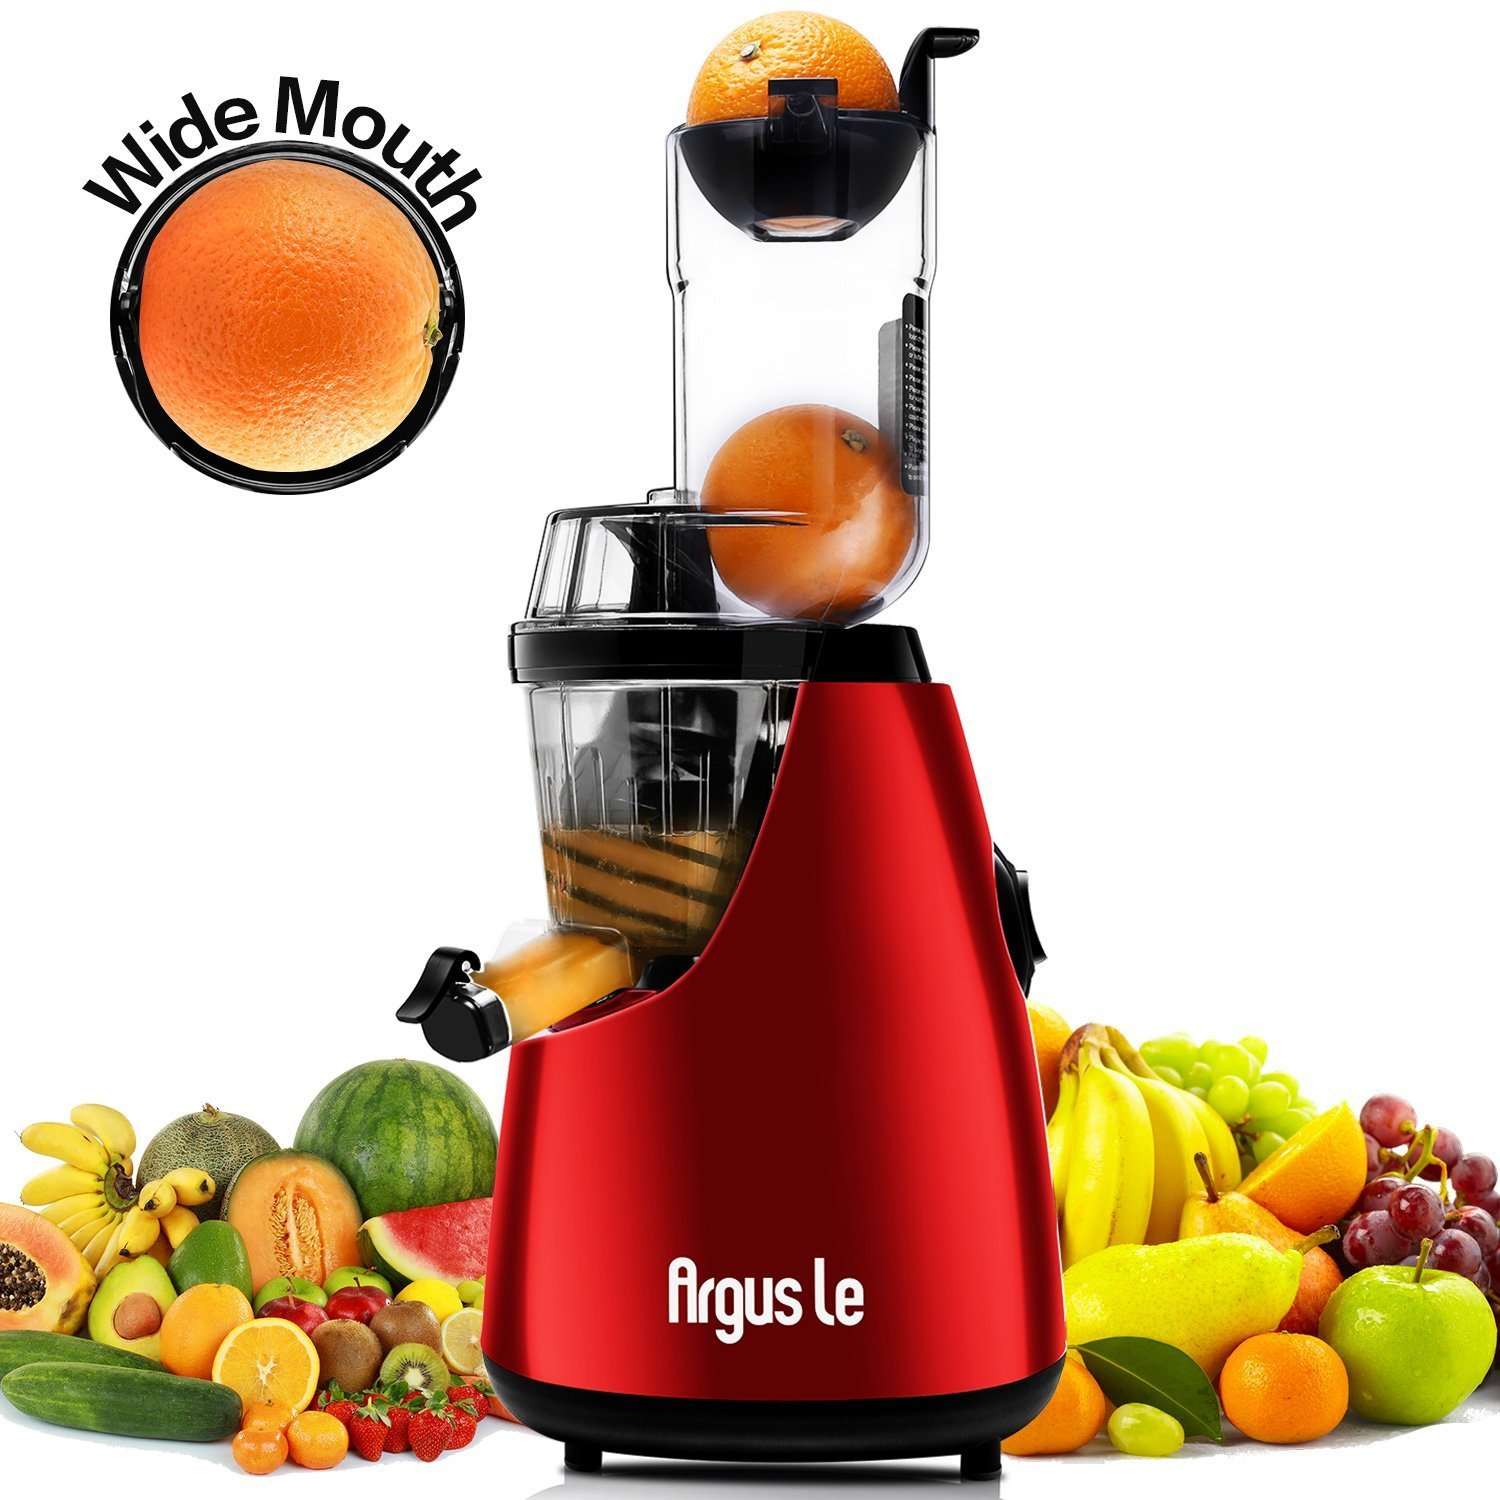 Argus Le Slow Masticating Juicer 3 inches Wide Feed Chute Easy Cleaning Extractor Fruits and Vegetables Low Speed Juicer - Unique 3 in 1 Auger Technology AL-B6000